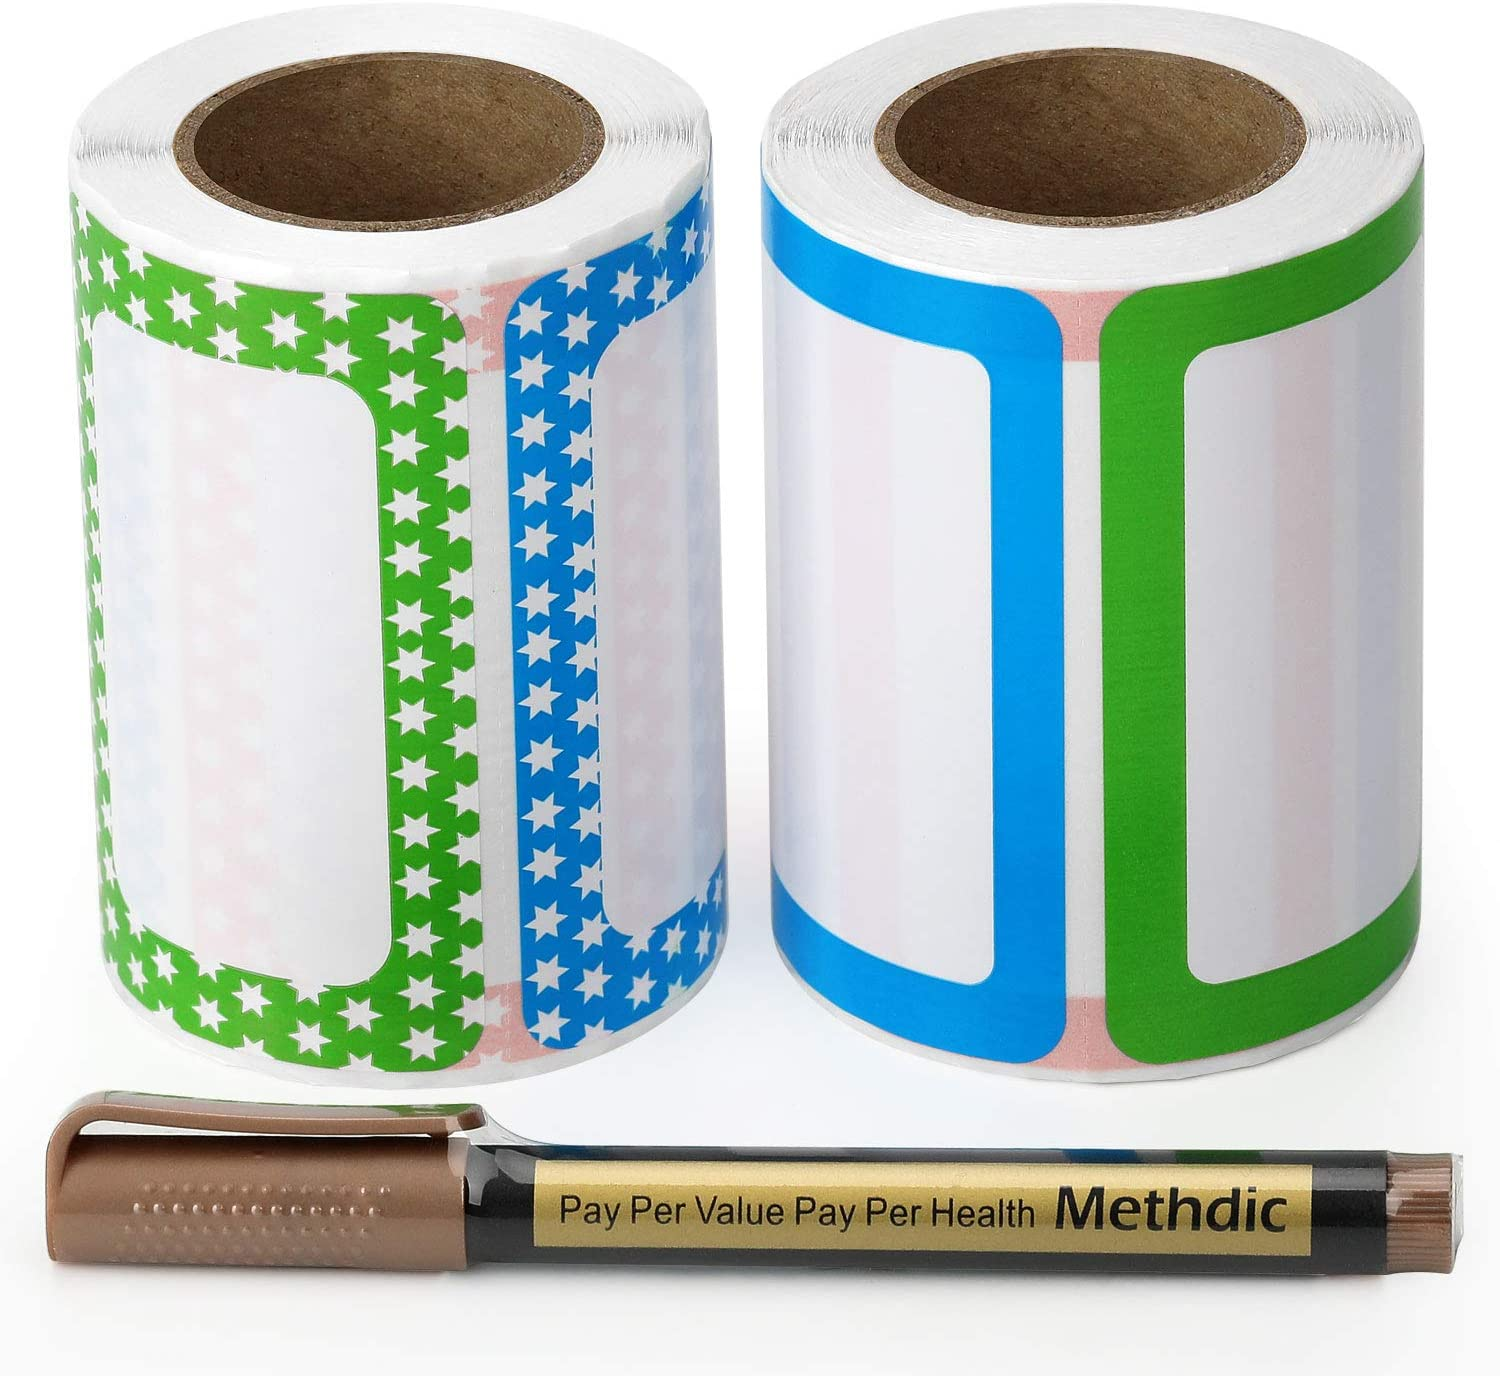 Methdic All Purpose Blank Name Tag Label Stickers 250 per Roll 2 Pack 3.5x2.25 inch